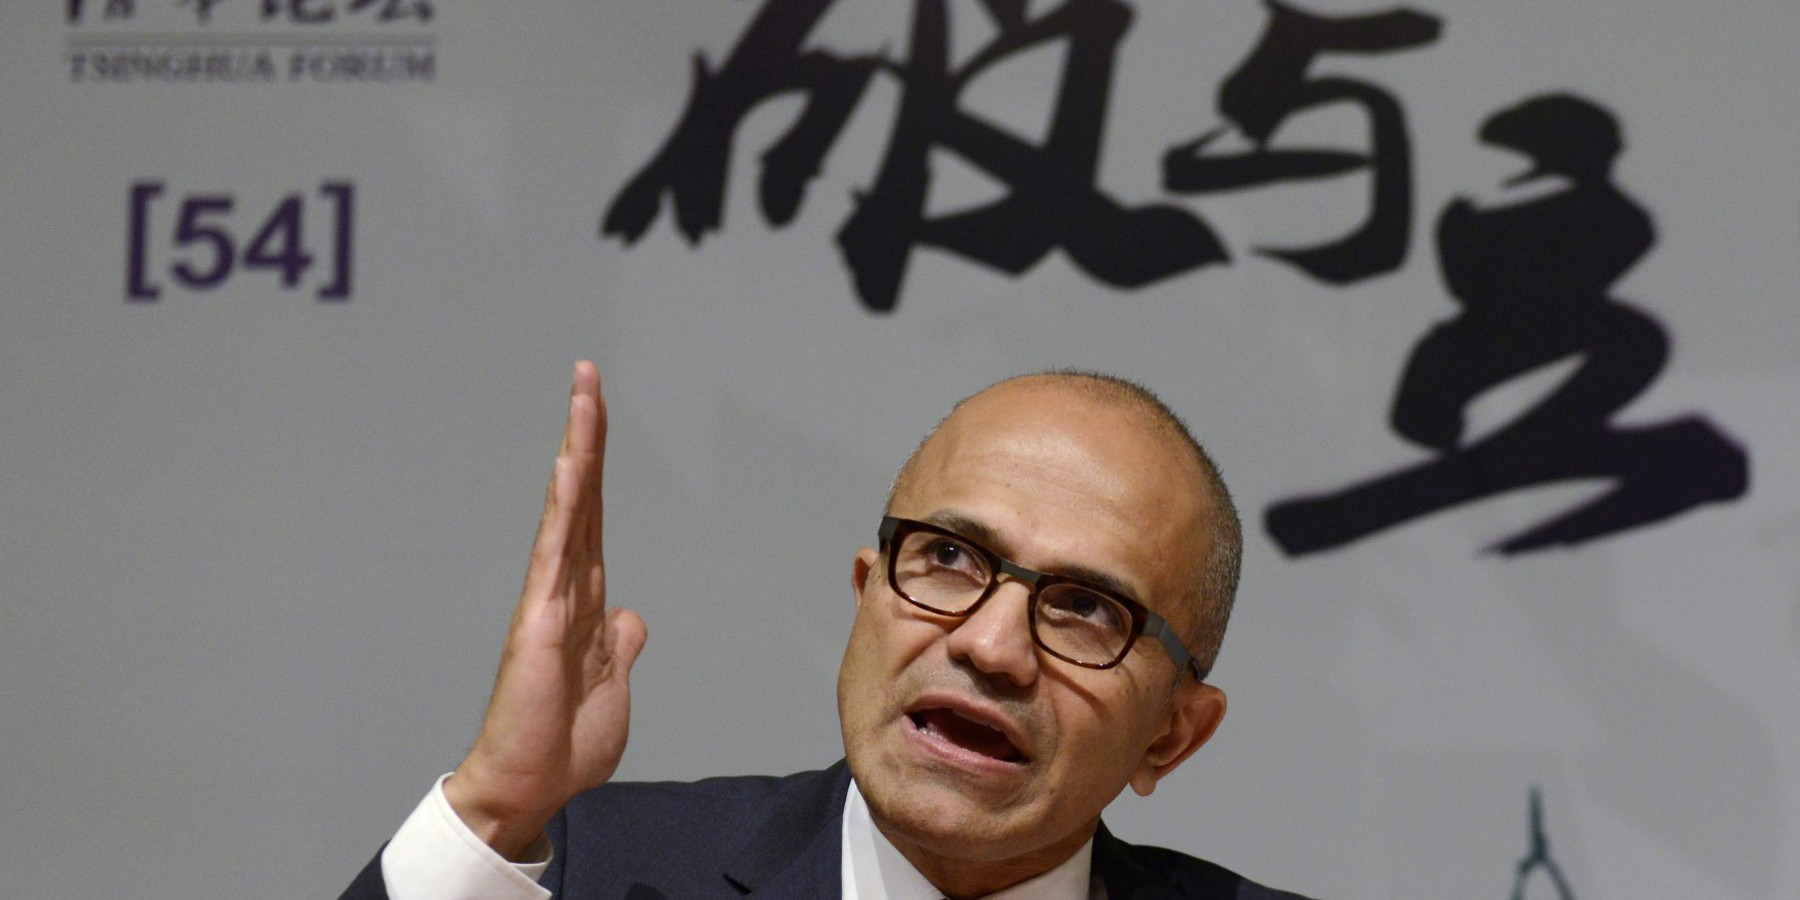 Microsoft Chief Executive Satya Nadella gestures as he speaks during a forum at Tsinghua University in Beijing September 25, 2014. REUTERS/China Daily (CHINA - Tags: BUSINESS SCIENCE TECHNOLOGY EDUCATION) CHINA OUT. NO COMMERCIAL OR EDITORIAL SALES IN CHINA - RTR47MJY